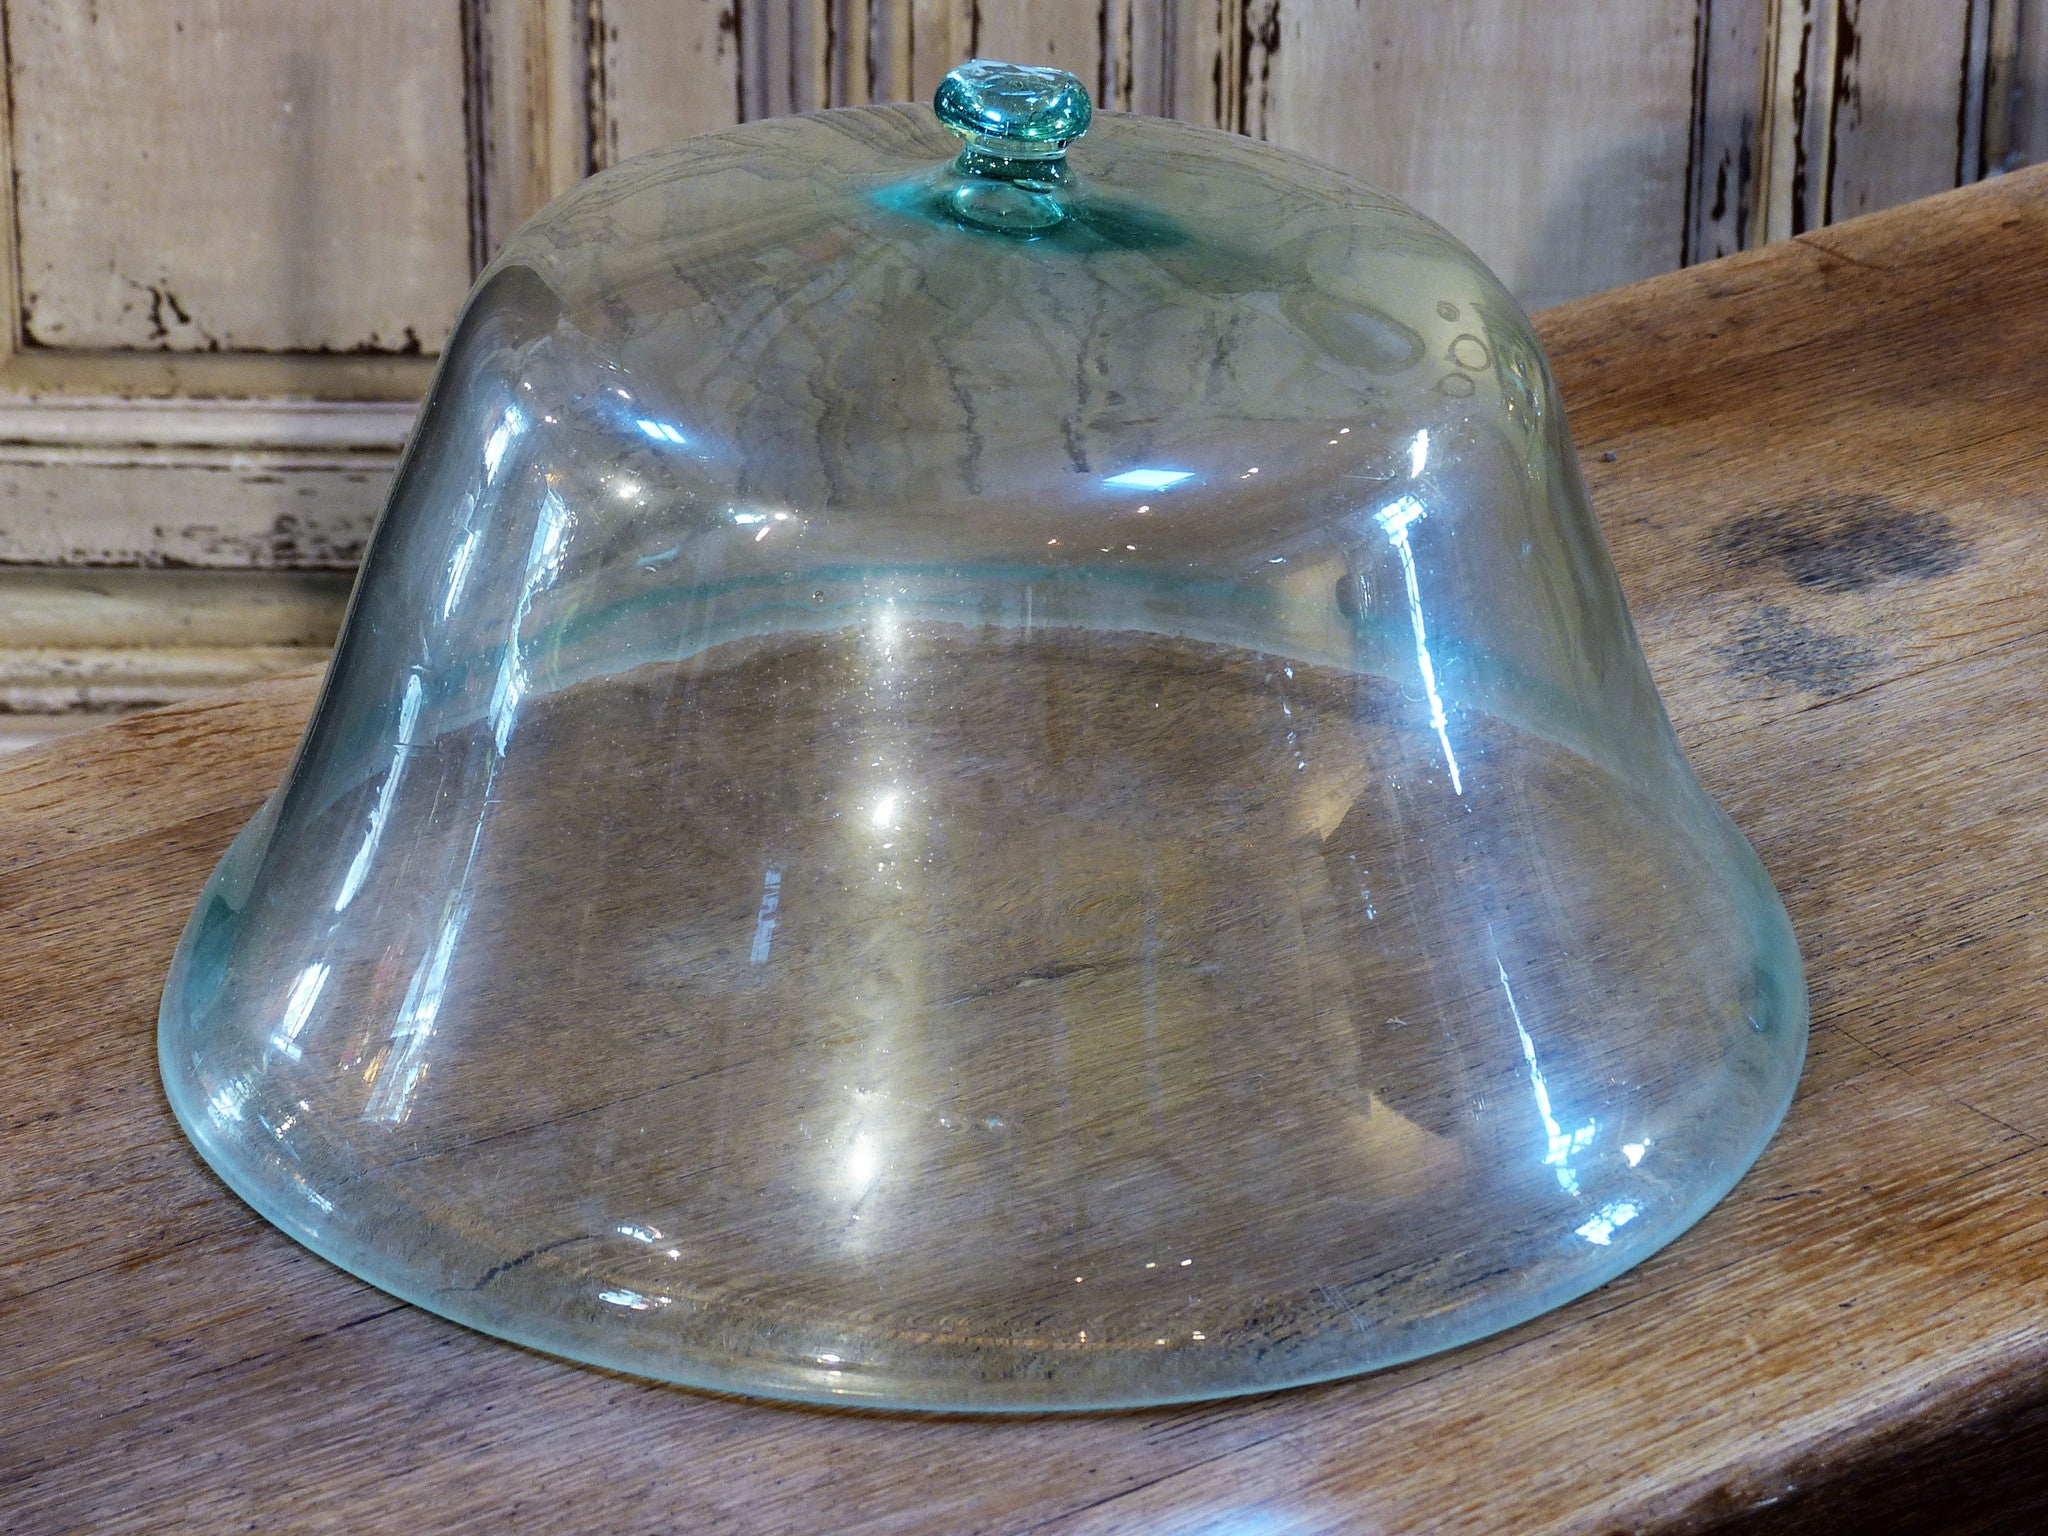 19th century glass garden cloche